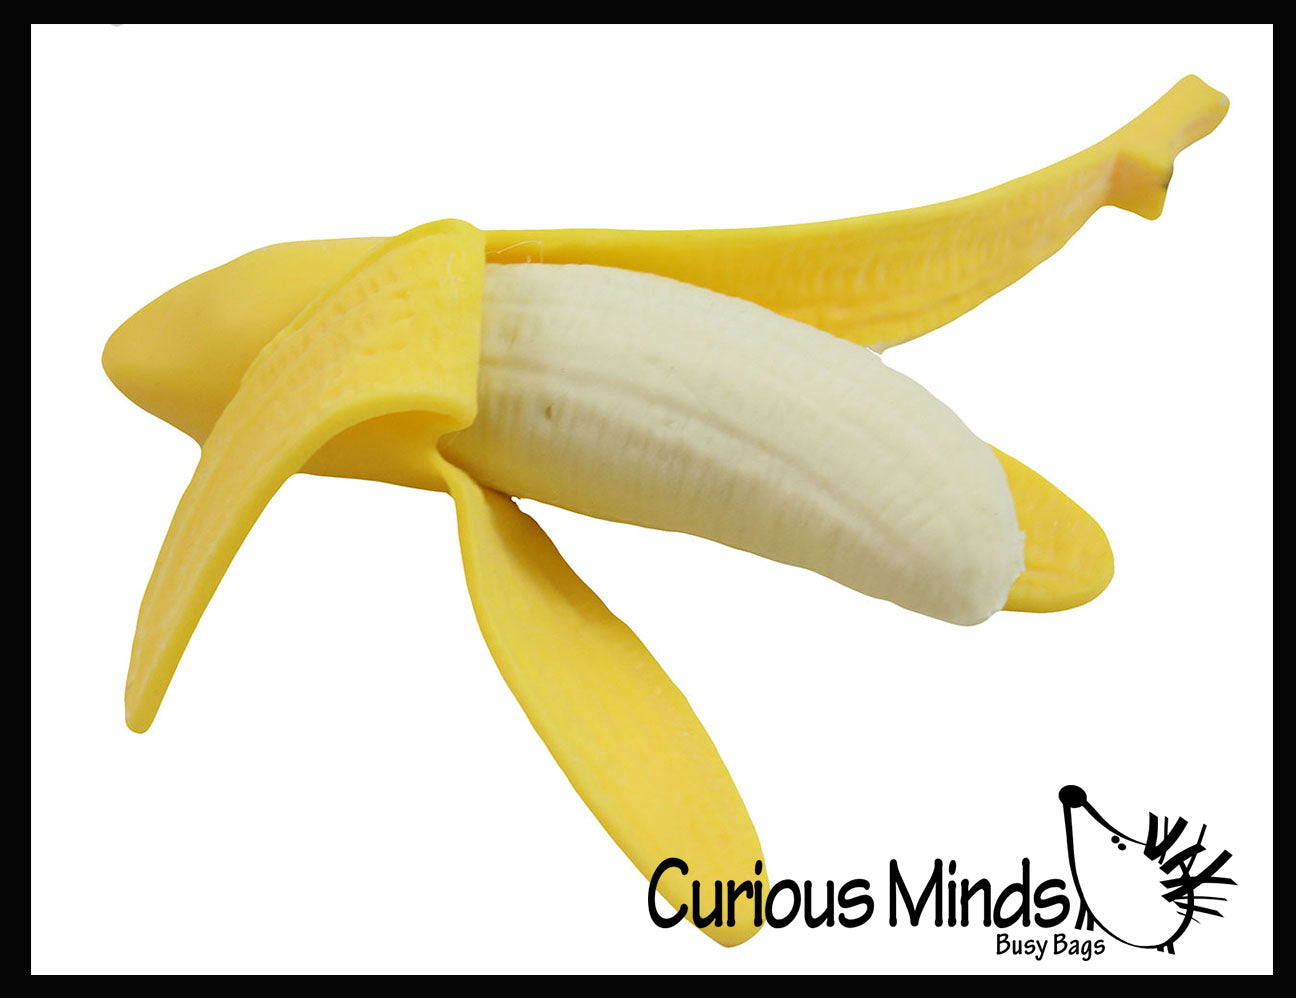 Realistic Stretchy Banana - Sensory, Stress, Squeeze Fidget Toy ADHD Special Needs Soothing